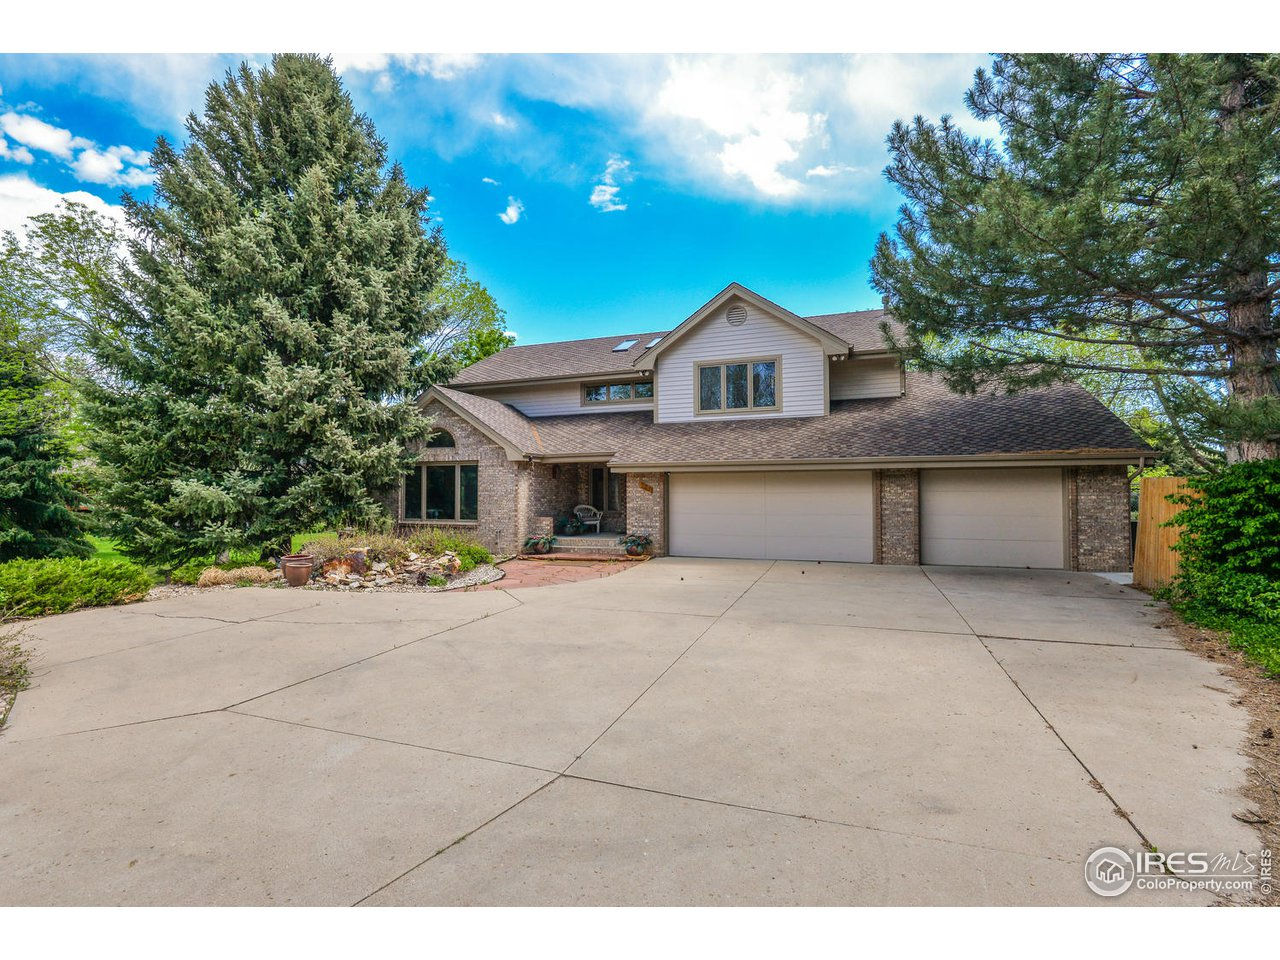 727 Ashford Ln, Fort Collins CO 80526